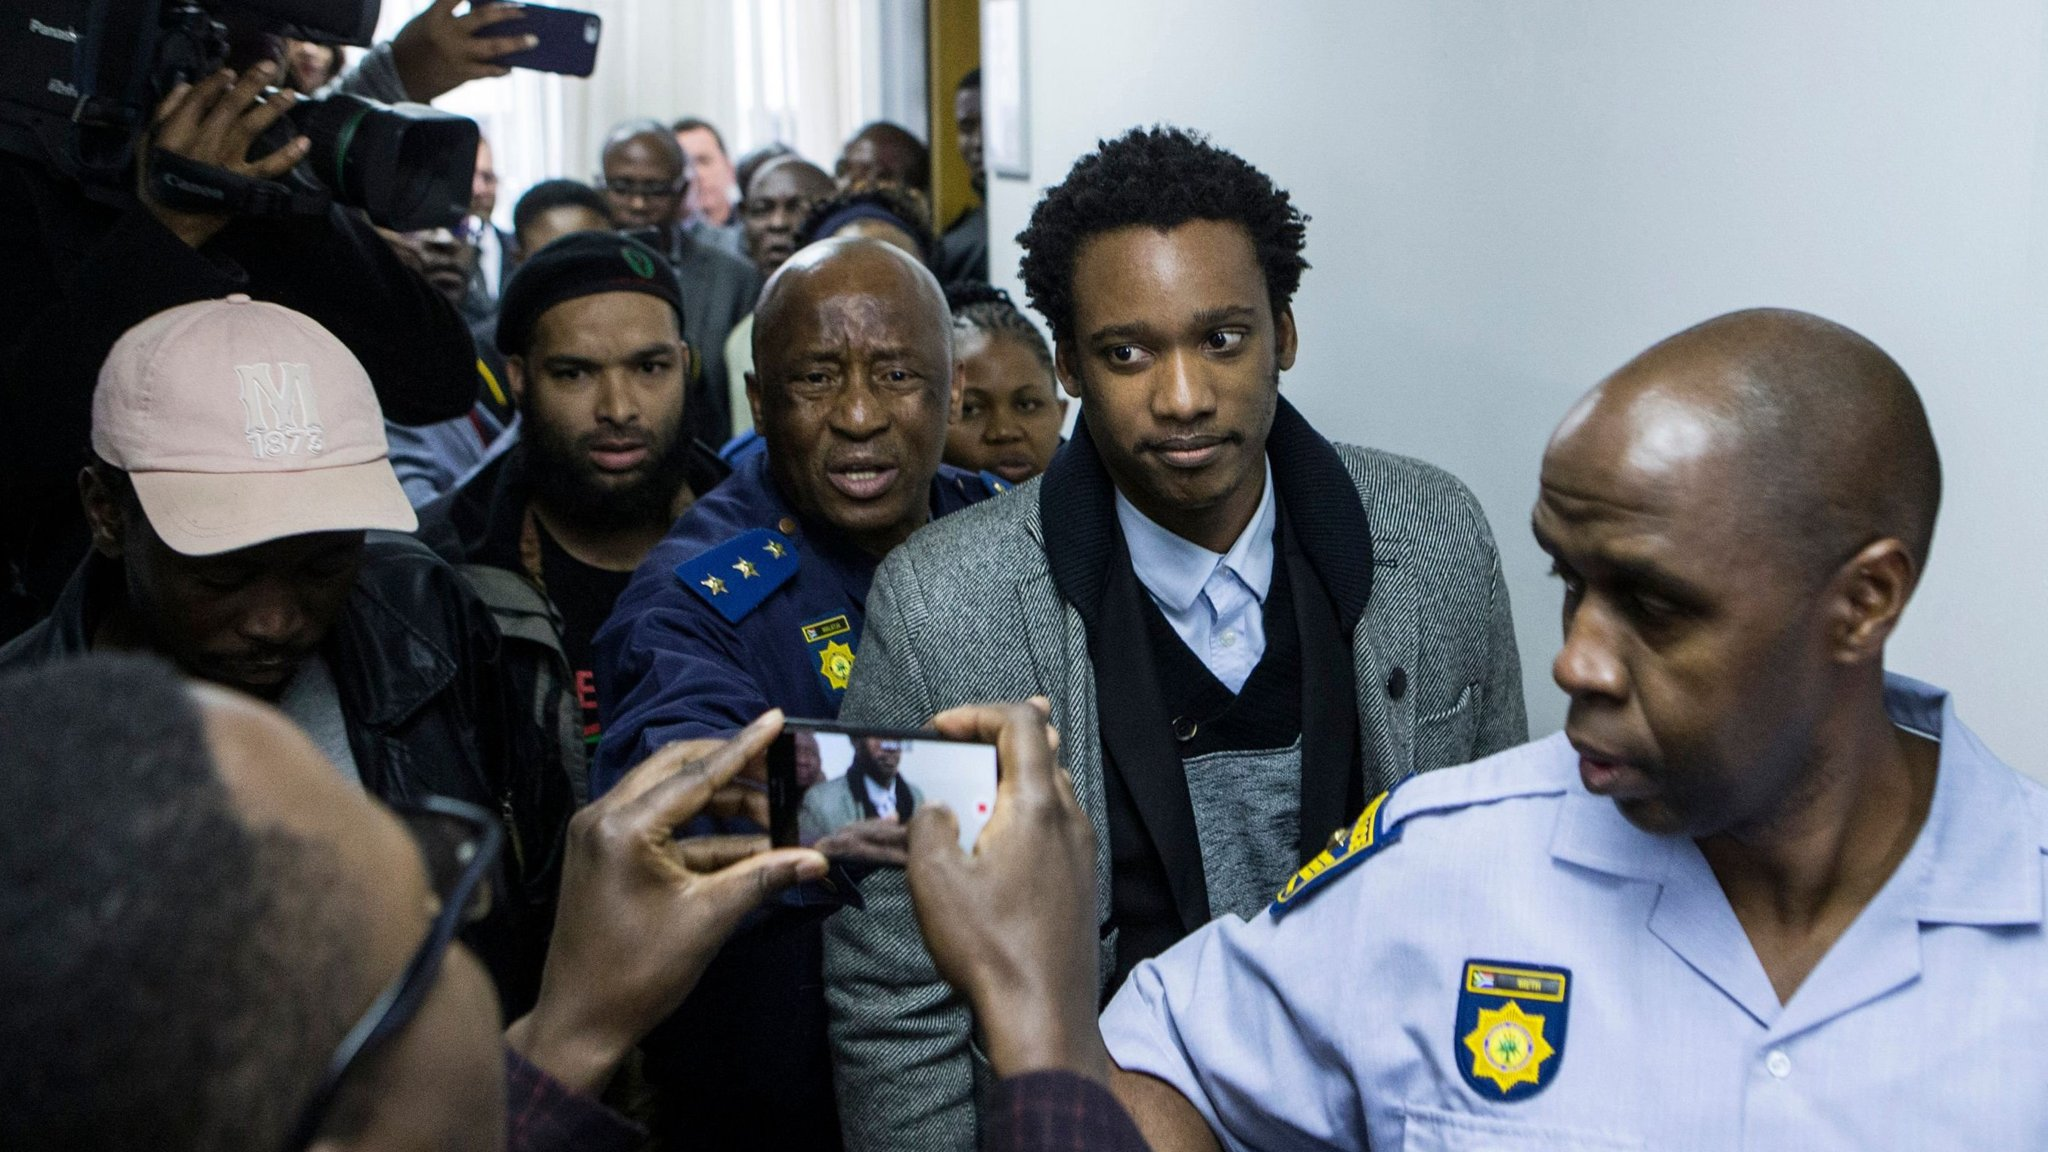 Social media goes crazy over new track: Duduzane's father (video)